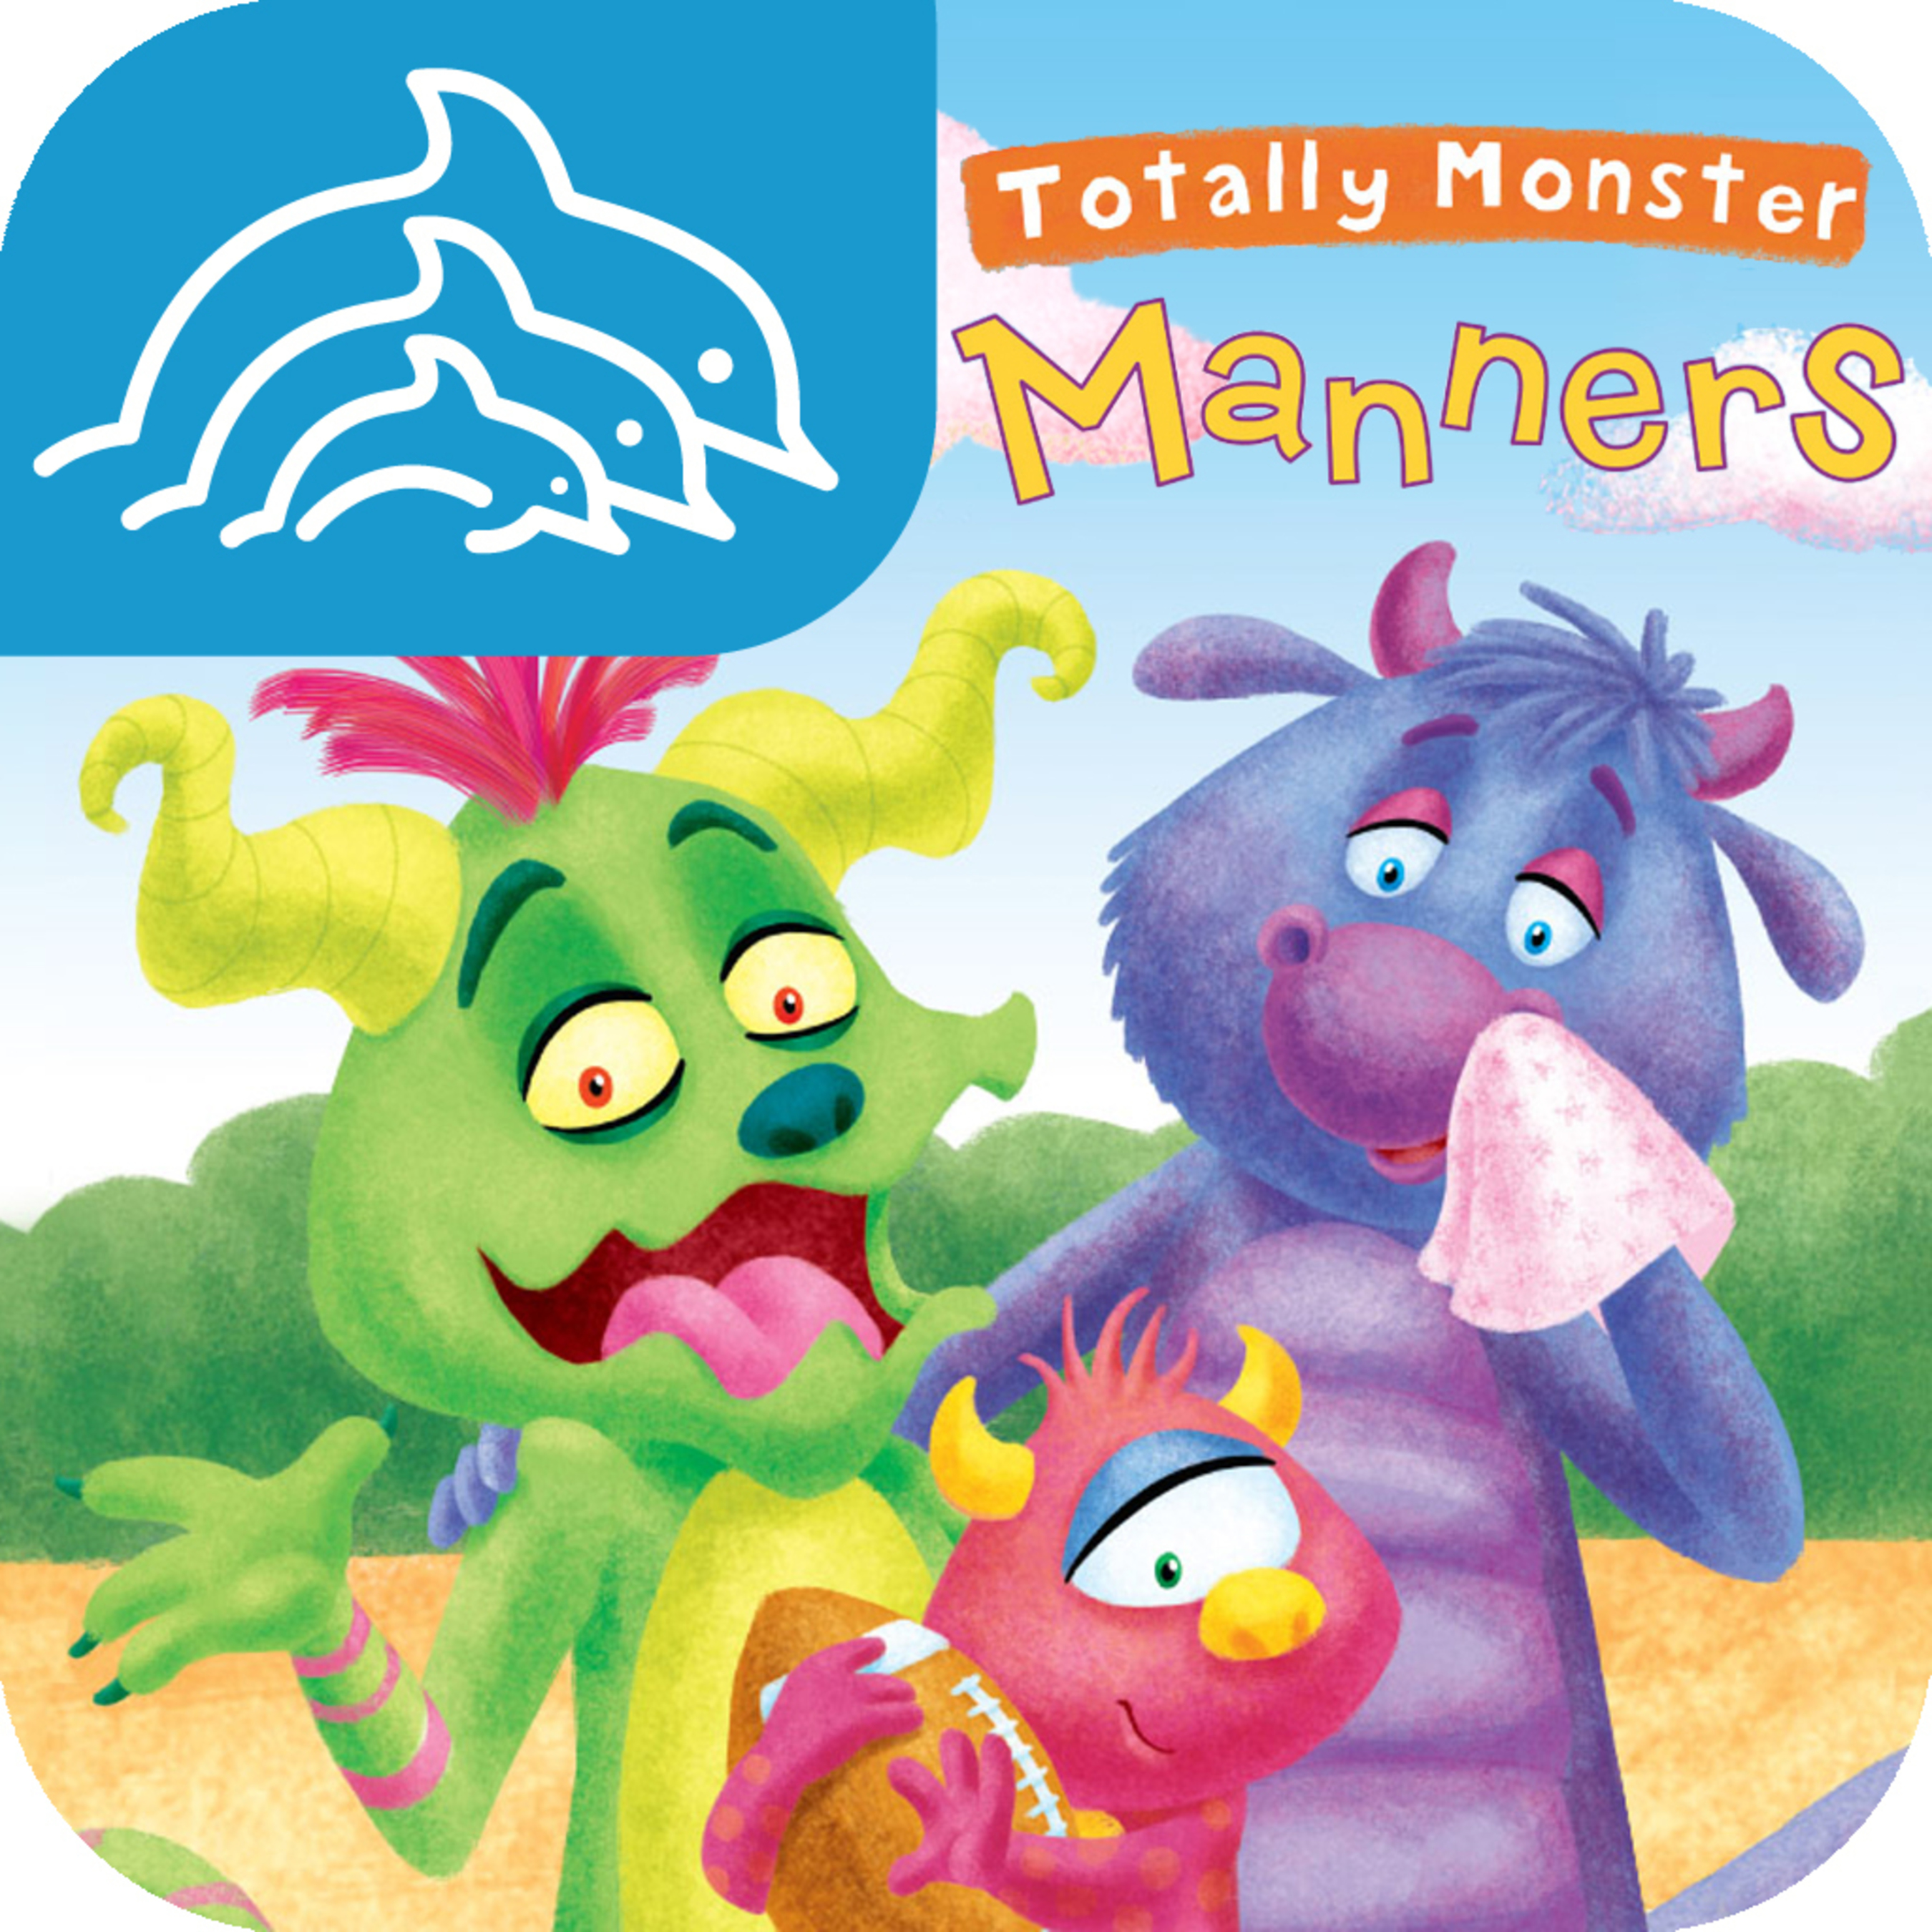 Totally Monster Manners (PRNewsFoto/Silver Dolphin Books)